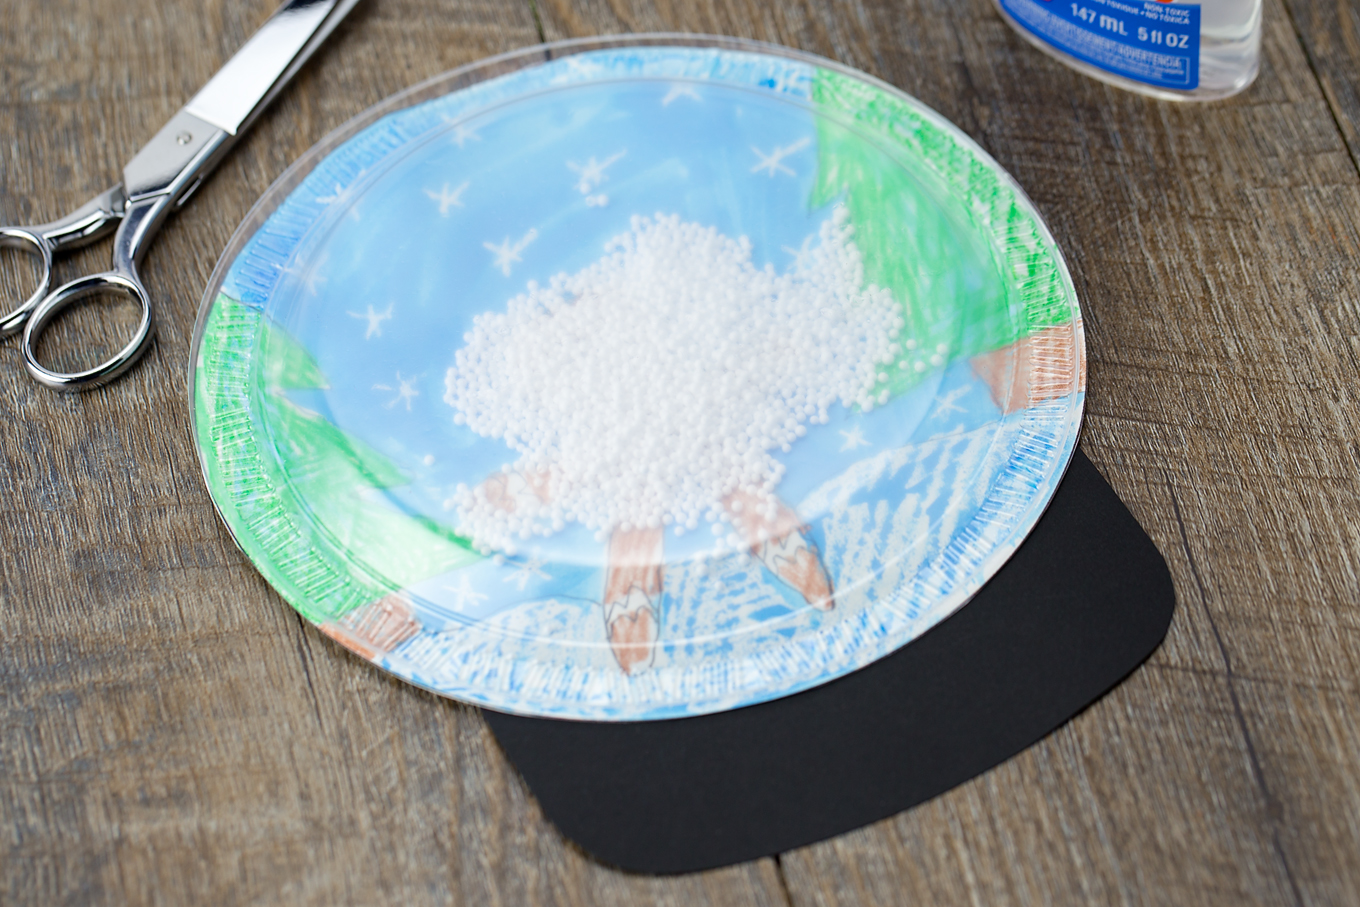 How to Make a Plastic Plate Snow Globe Craft